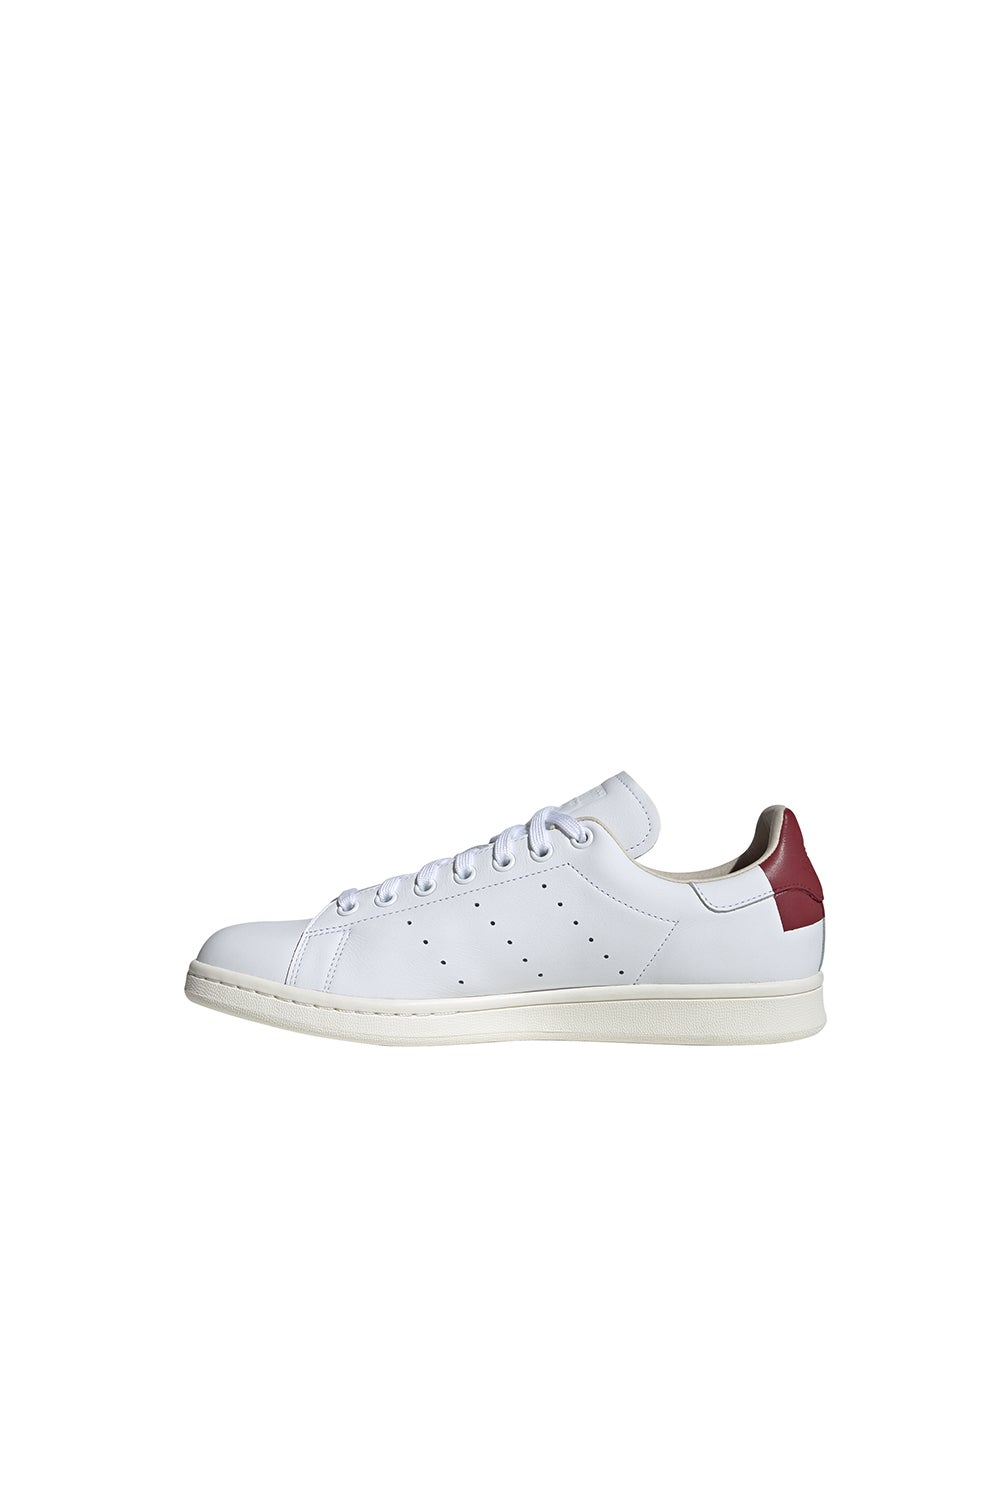 adidas Stan Smith FTWR White/Collegiate Burgundy